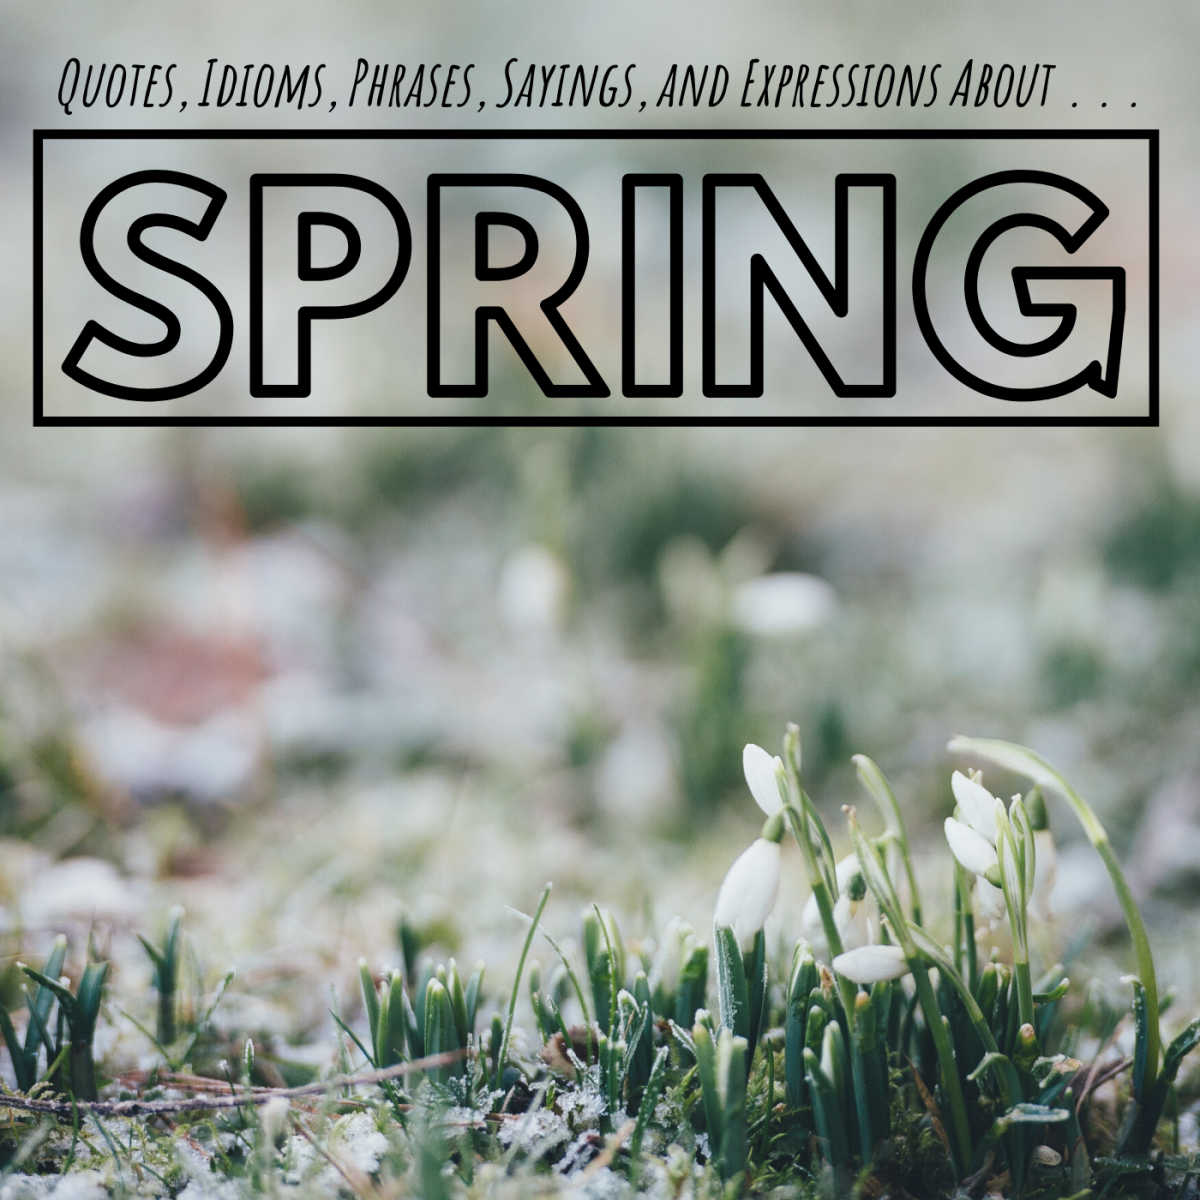 Common Spring Season Idioms Adages Quotes And Sayings Holidappy